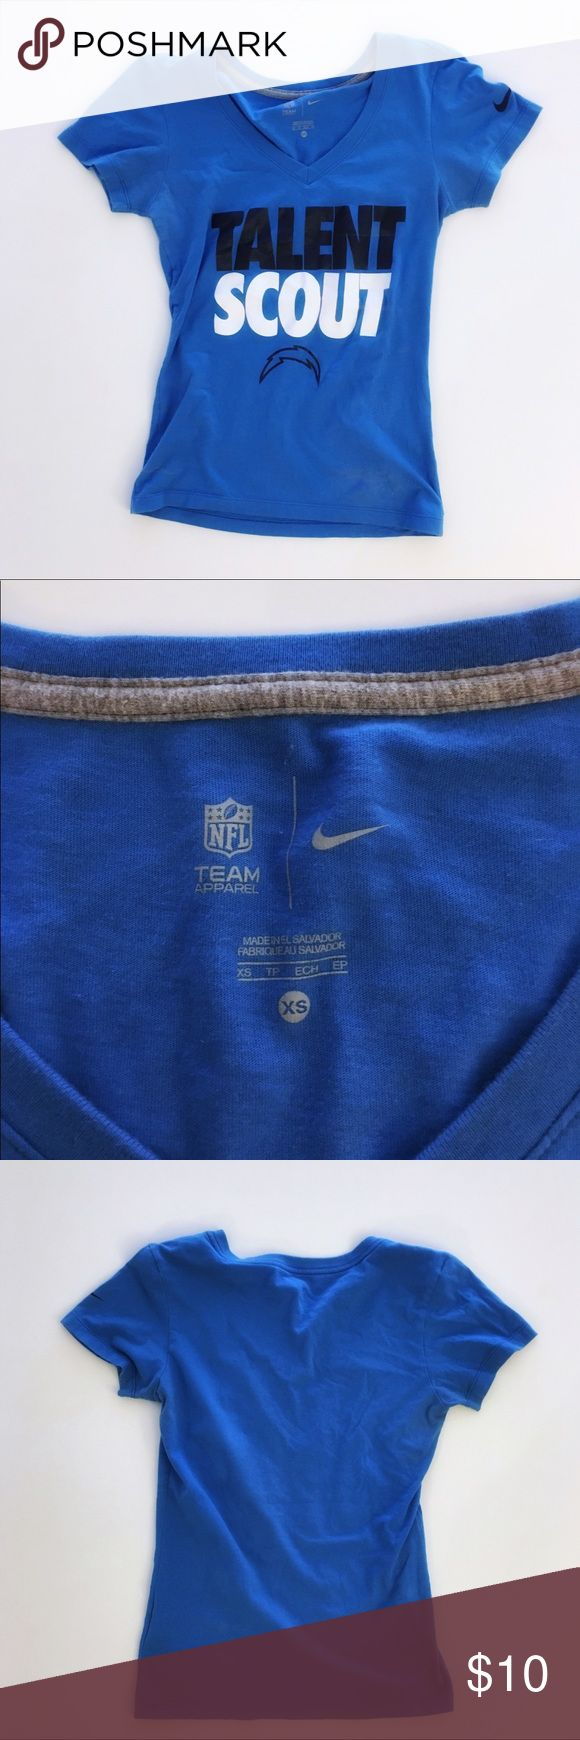 """Nike NFL Chargers Blue V-Neck Talent Scout T-Shirt Nike NFL Chargers Blue V-Neck """"Talent Scout"""" T-Shirt - Size XS - in very good condition Nike Tops Tees - Short Sleeve"""